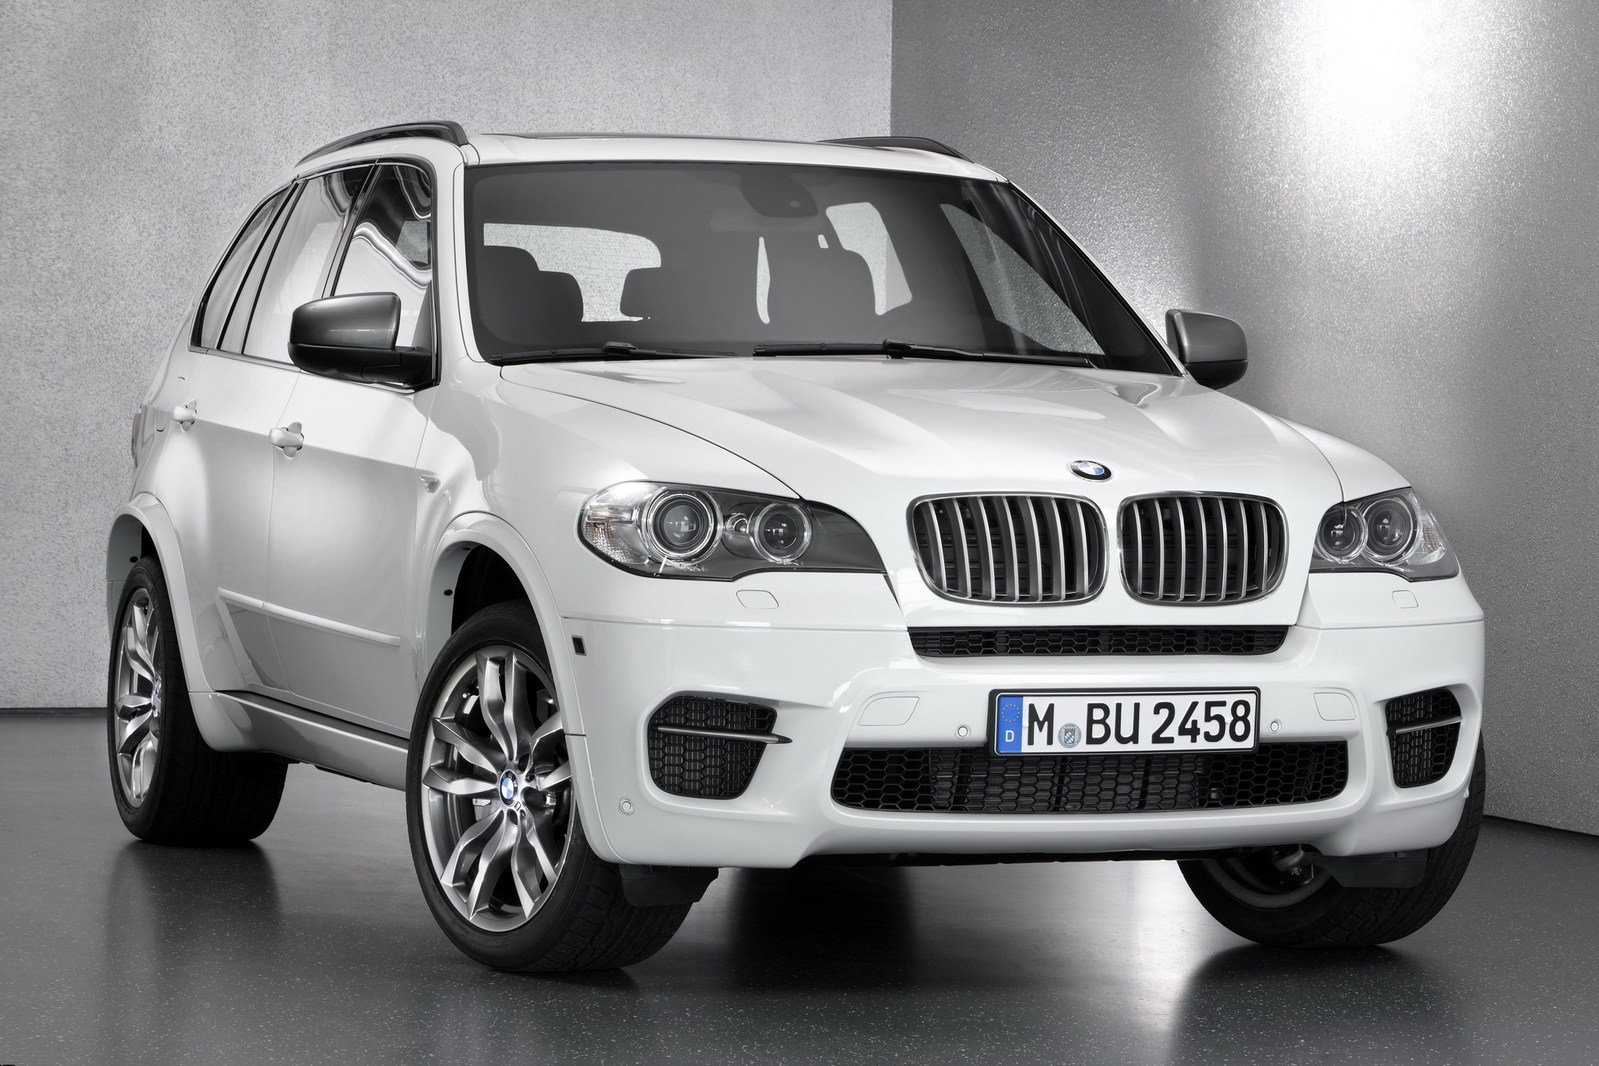 2012 bmw x5 m50d review gallery top speed. Black Bedroom Furniture Sets. Home Design Ideas